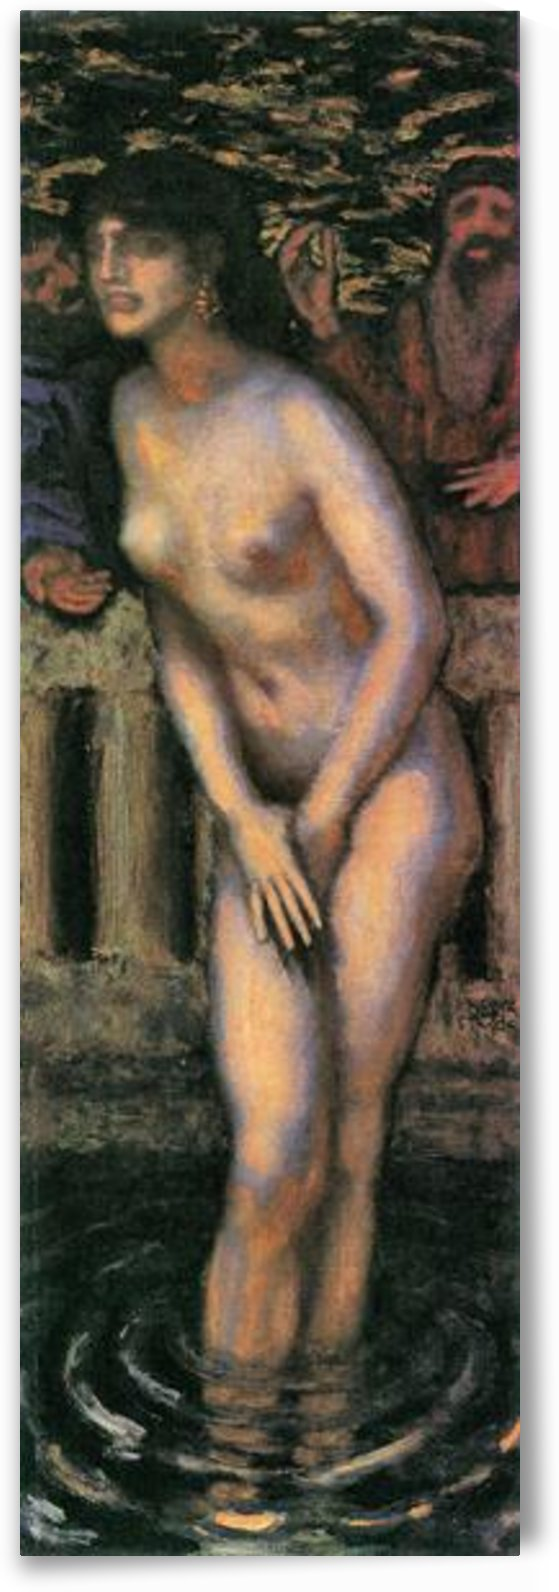 Susanna in the bath -2- by Franz von Stuck by Franz von Stuck